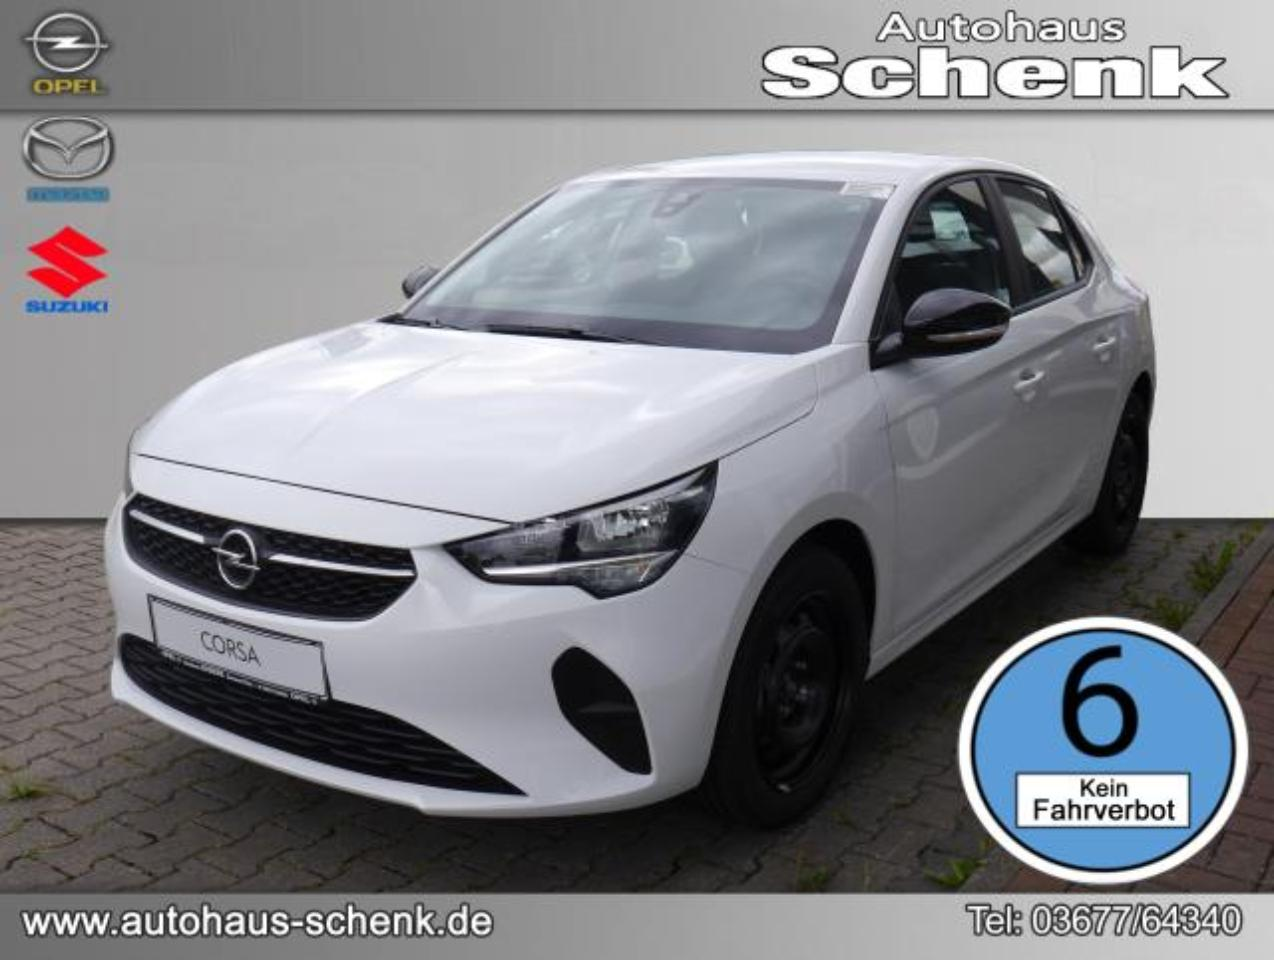 Opel Corsa Edition 1.2 55 kW (75 PS), Start/Stop, Euro 6d (Ma